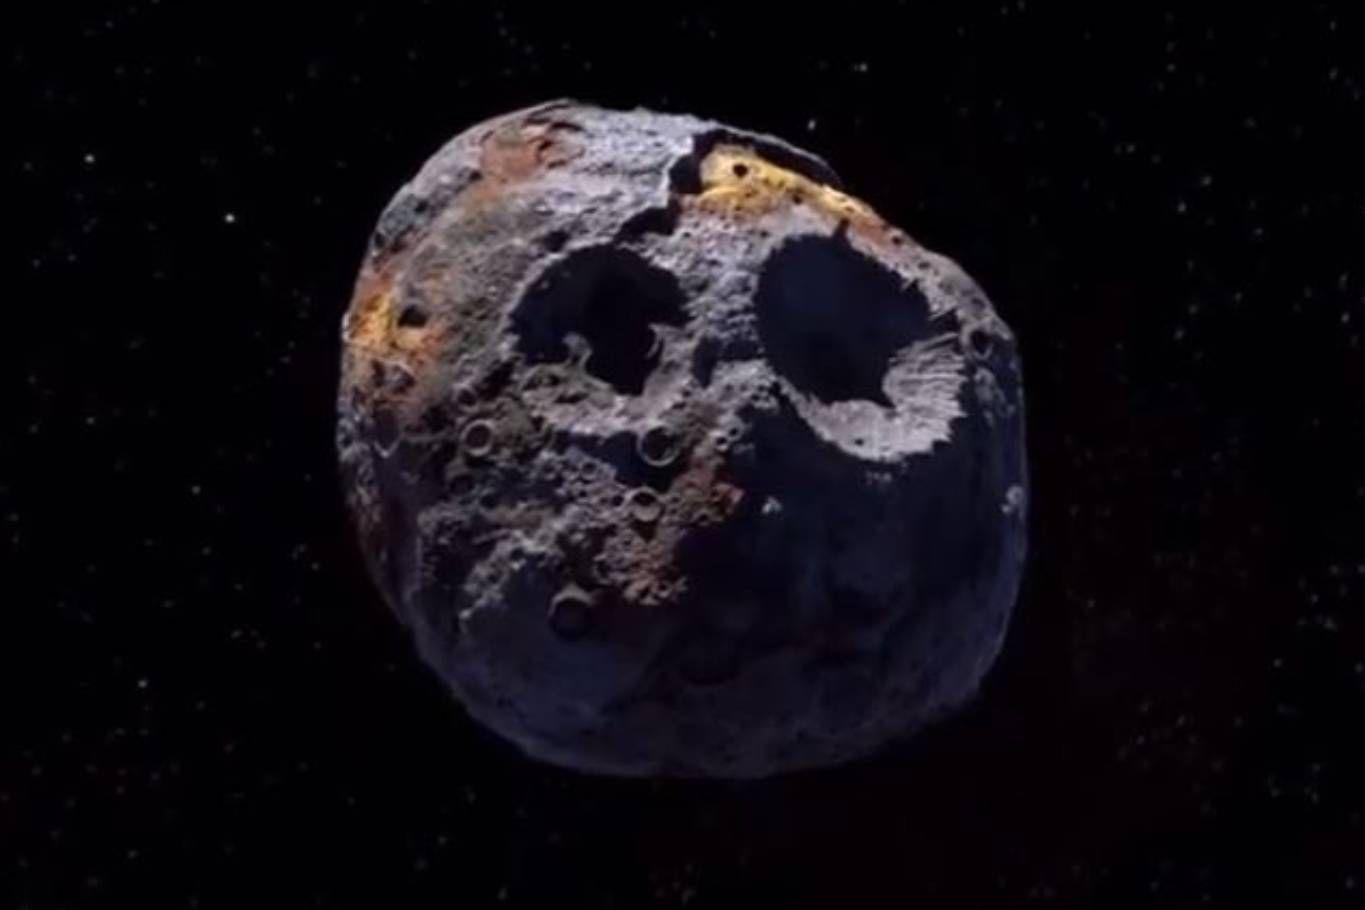 Make sure the asteroid Psycho is more valuable than the Earth's overall economy